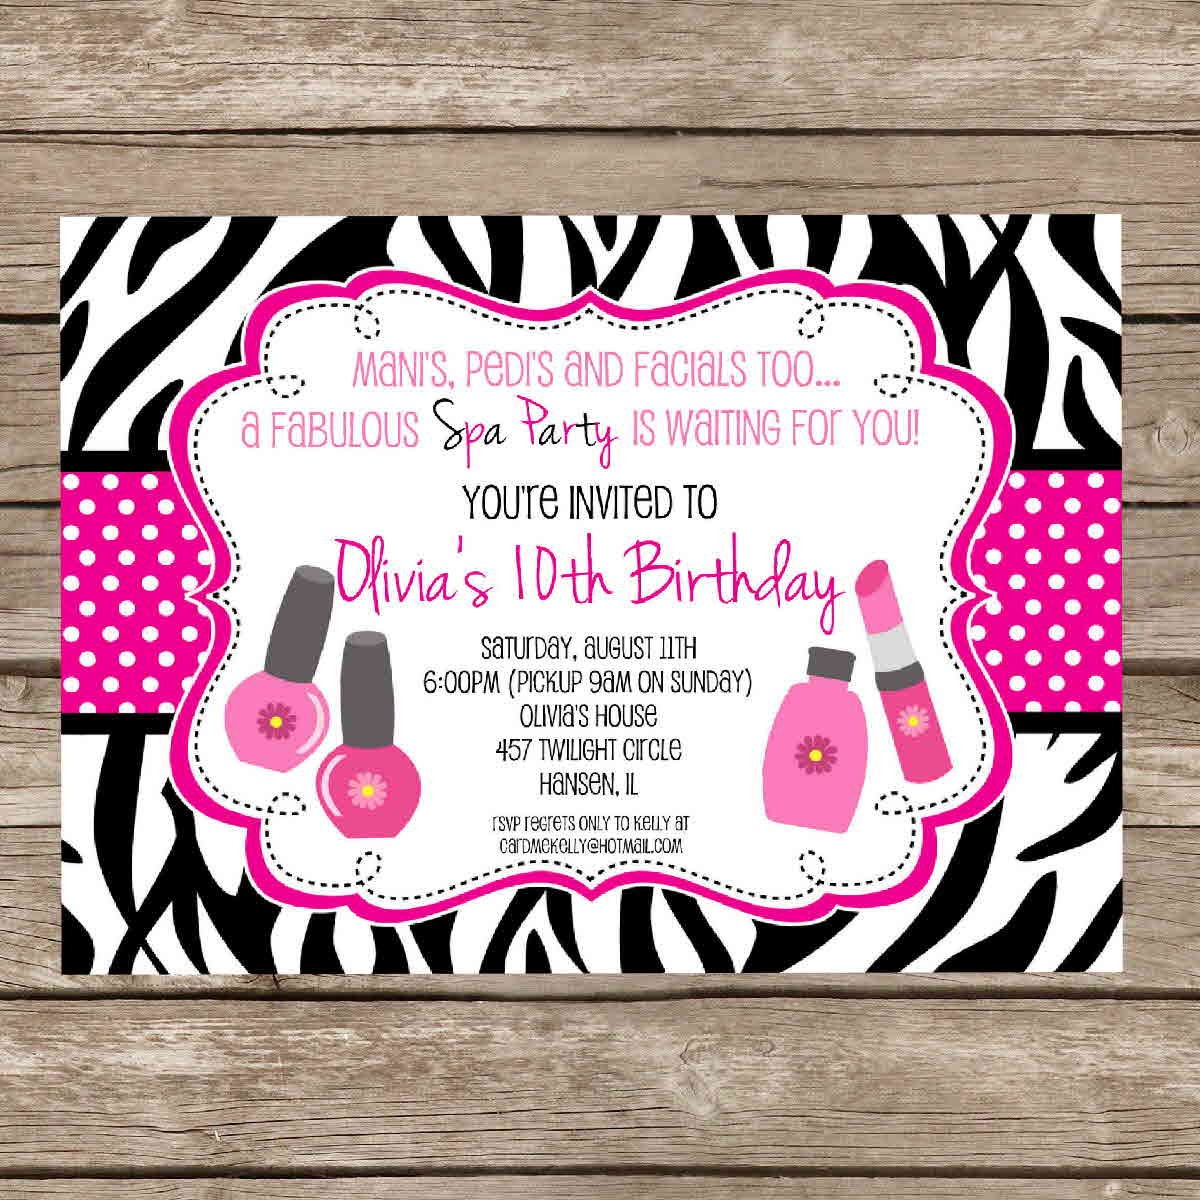 free printable birthday sleepover invitation templates ; 958905f8869e6e920d107649e99a3971